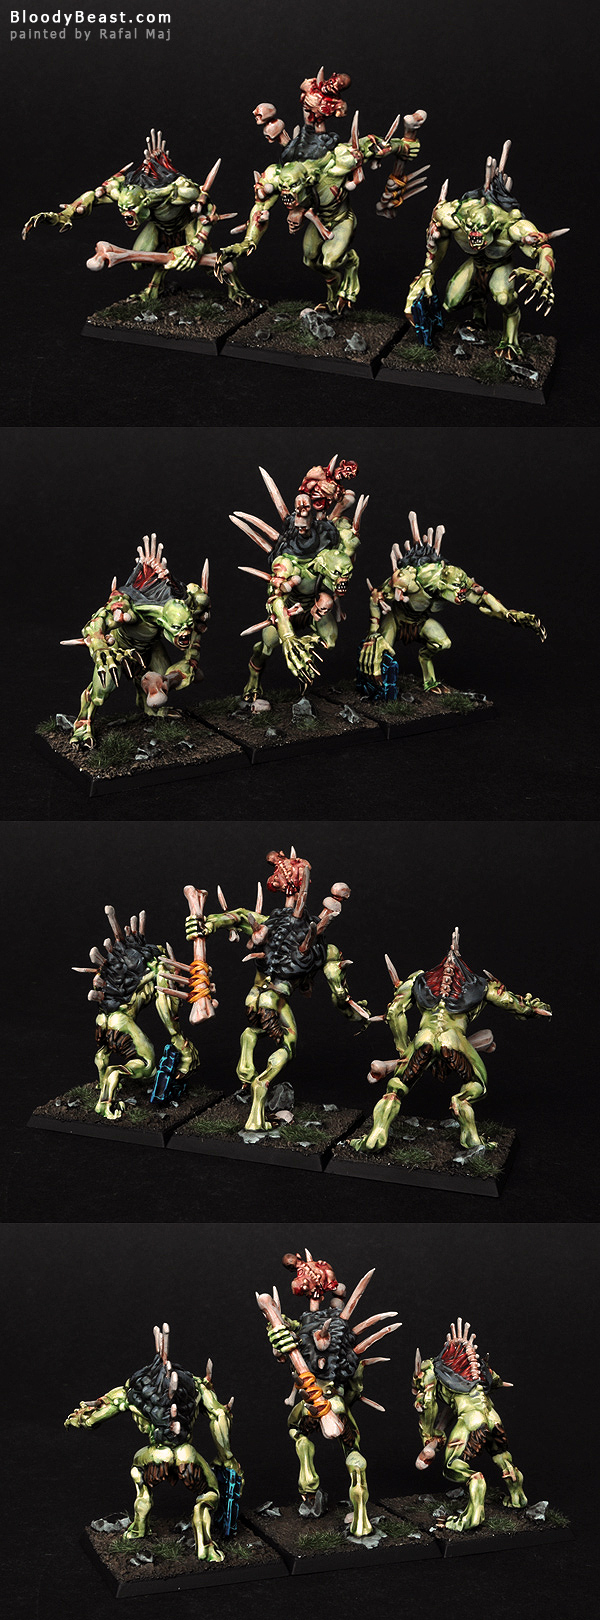 Vampire Counts Crypt Horrors painted by Rafal Maj (BloodyBeast.com)